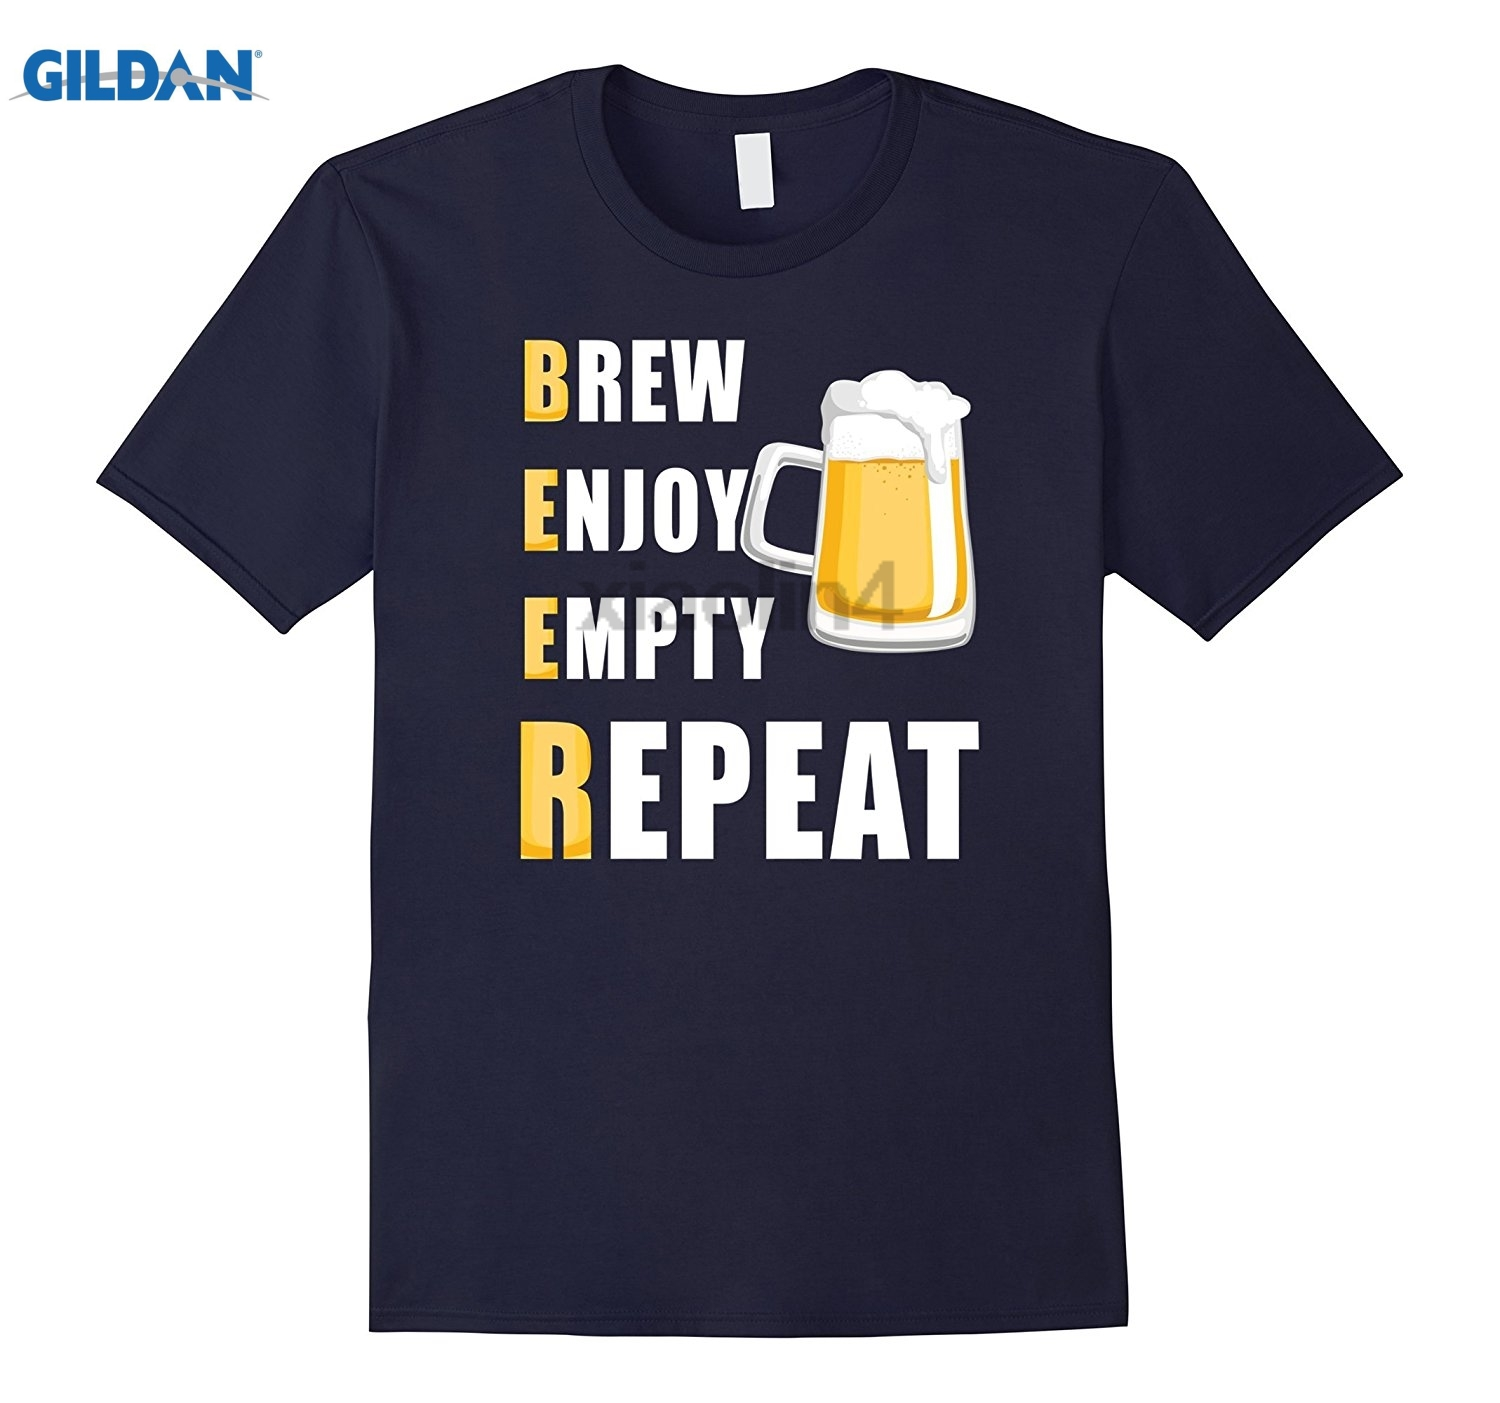 GILDAN Brew Enjoy Empty Repeat Funny Beer T-Shirt Love Drinking GILDAN Summer T-shirt Mens T-shirt glasses Womens T-shirt